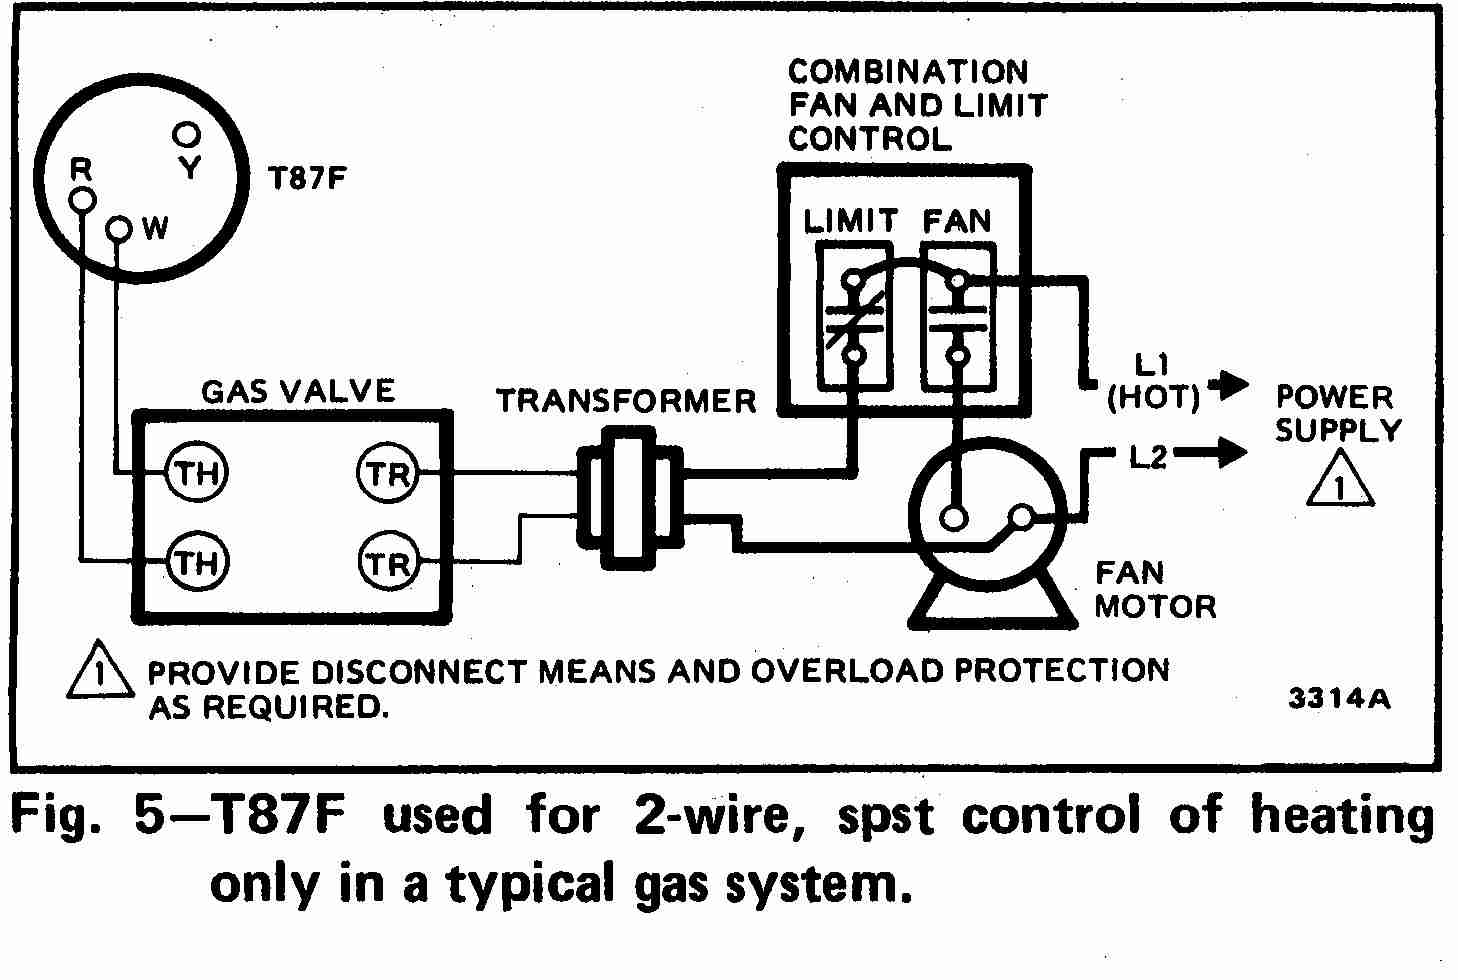 House Wiring Diagram Heater | Wiring Liry on dell wiring diagram, pa wiring diagram, hp wiring diagram, cb wiring diagram, netgear wiring diagram, kw wiring diagram, st wiring diagram, rc wiring diagram, wj wiring diagram, panasonic wiring diagram, apple wiring diagram, rg wiring diagram, cm wiring diagram, toshiba wiring diagram,